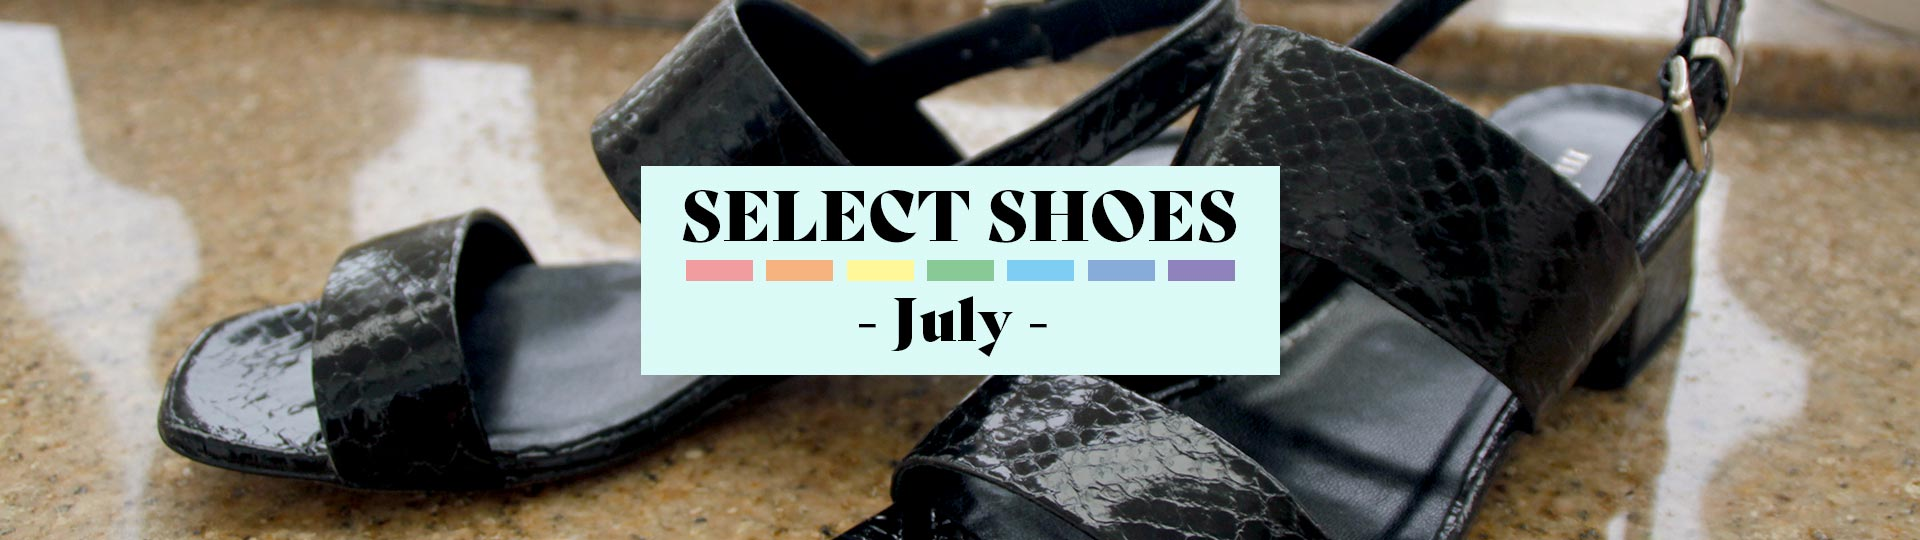 Select Shoes July 2021